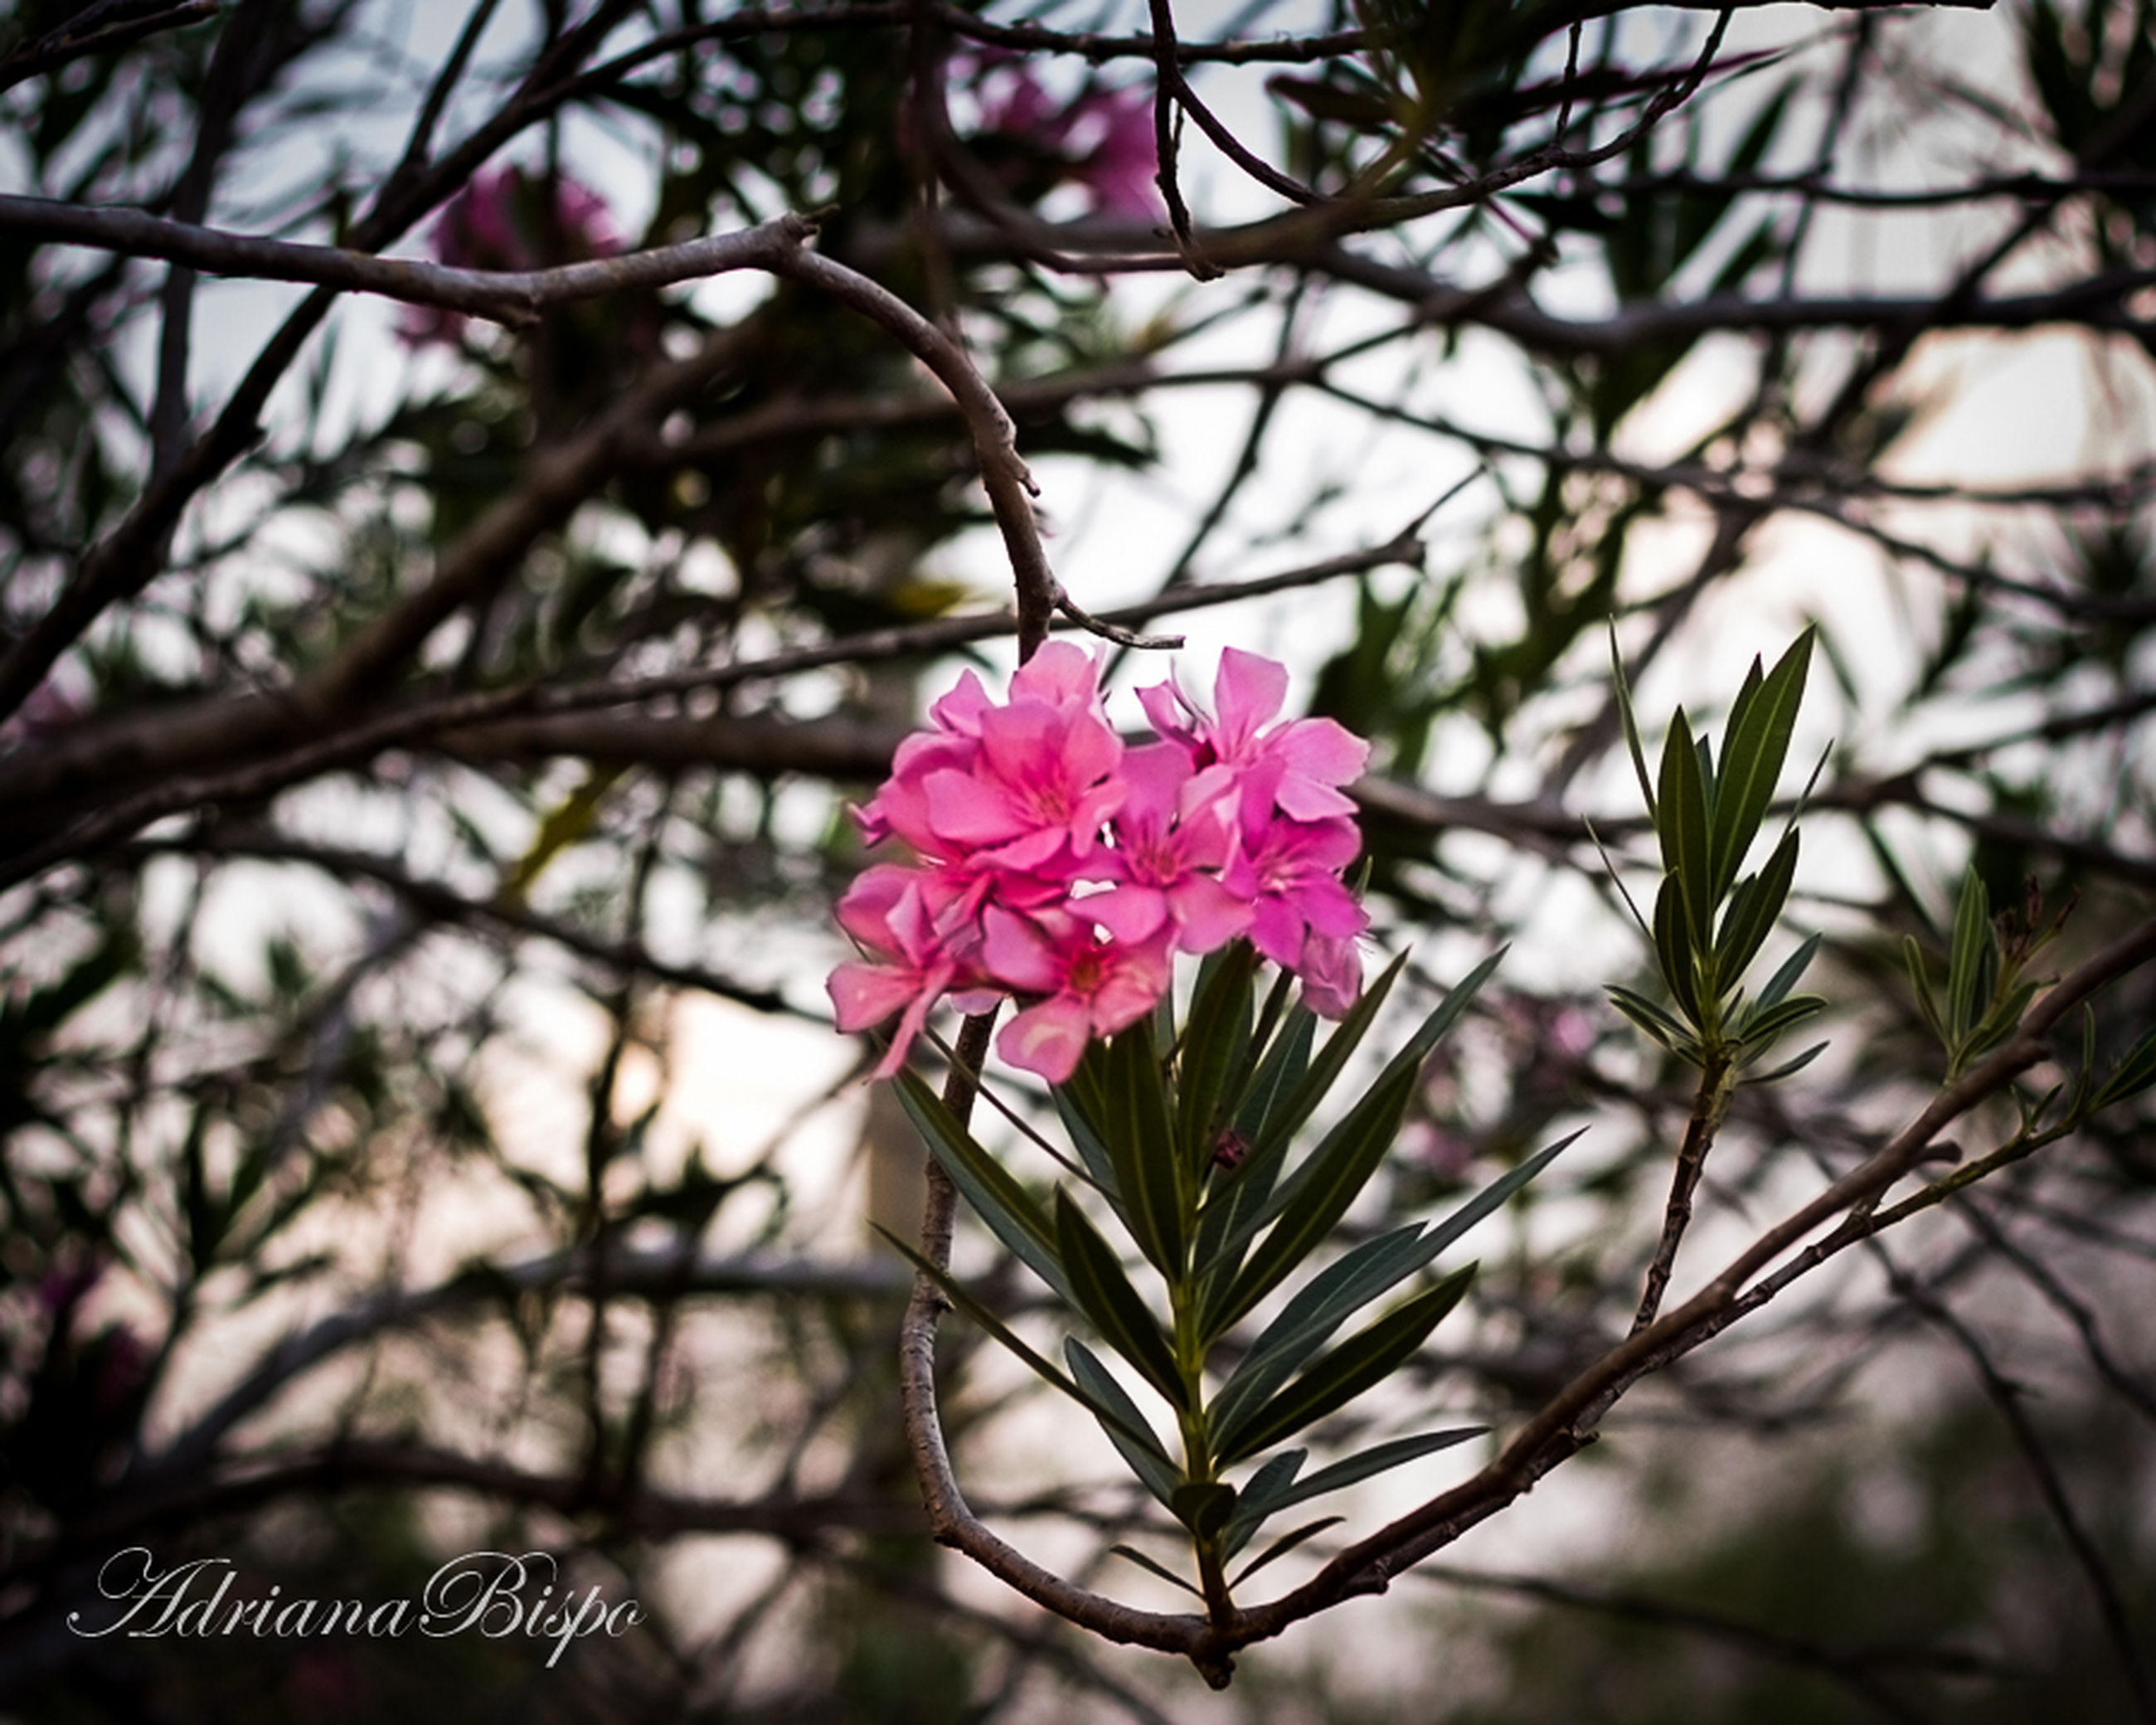 flower, freshness, growth, pink color, fragility, branch, petal, beauty in nature, nature, focus on foreground, blooming, tree, close-up, blossom, flower head, pink, in bloom, leaf, plant, low angle view